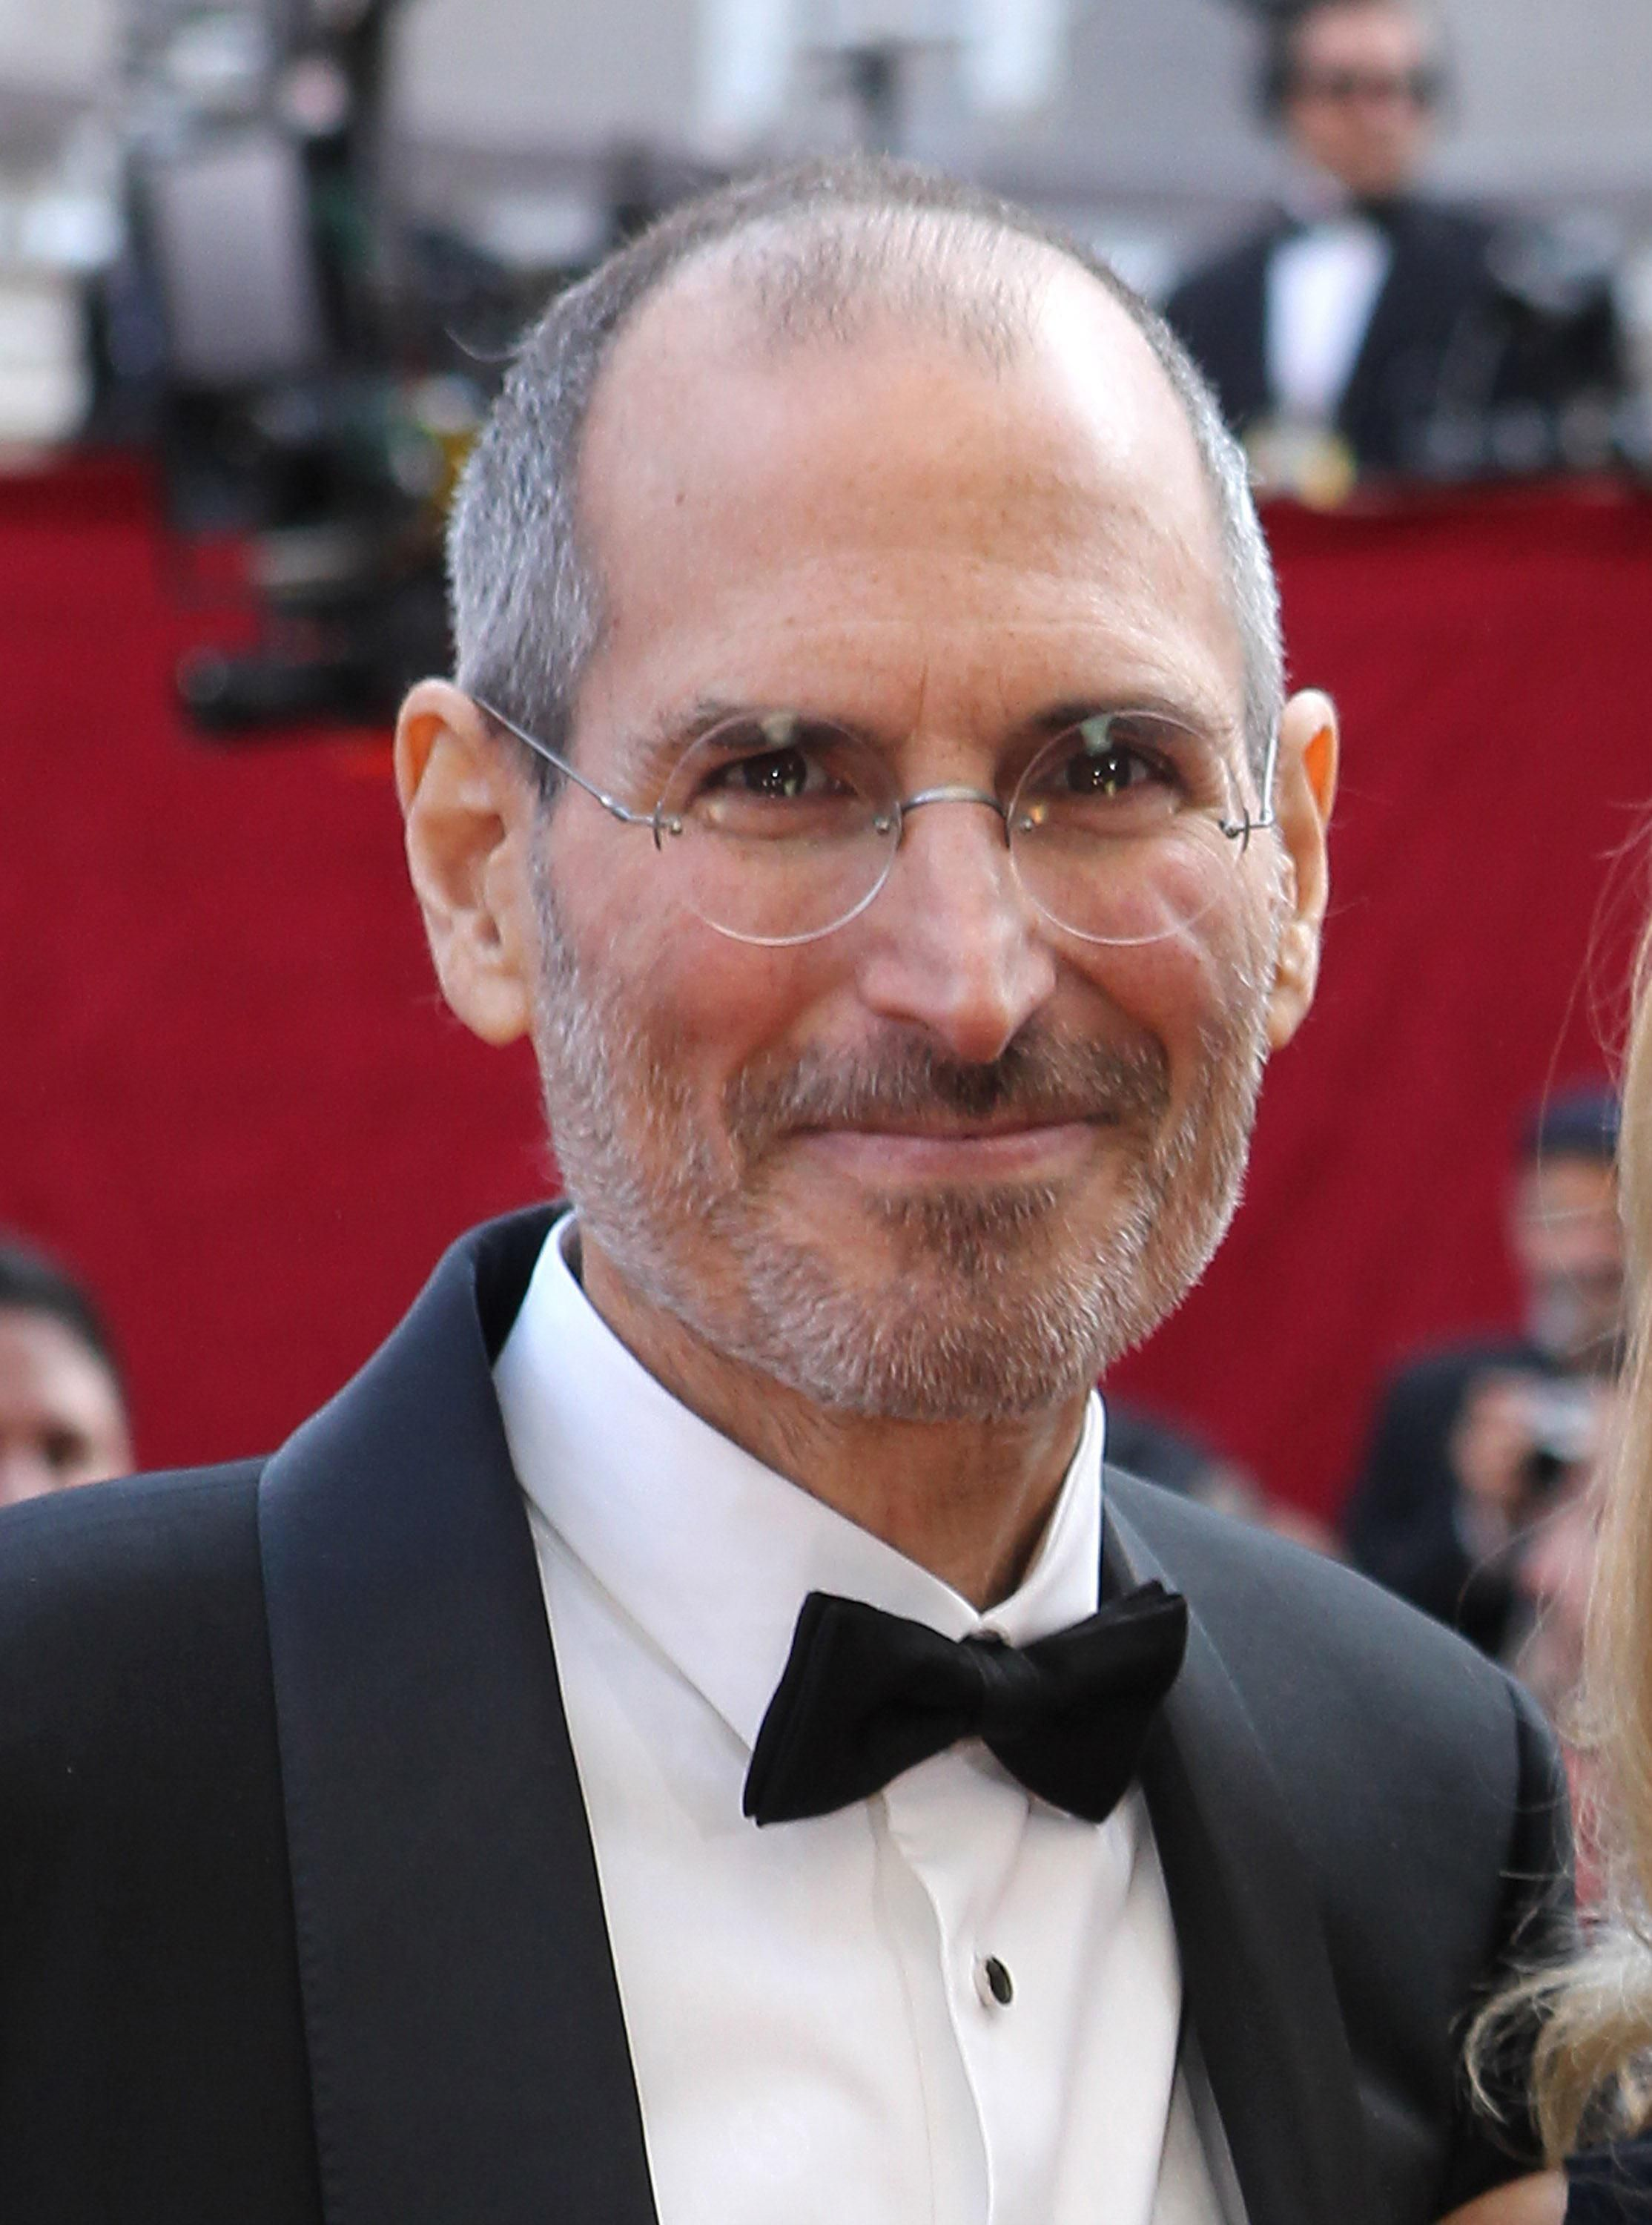 Steve Jobs in black tie on the red carpet